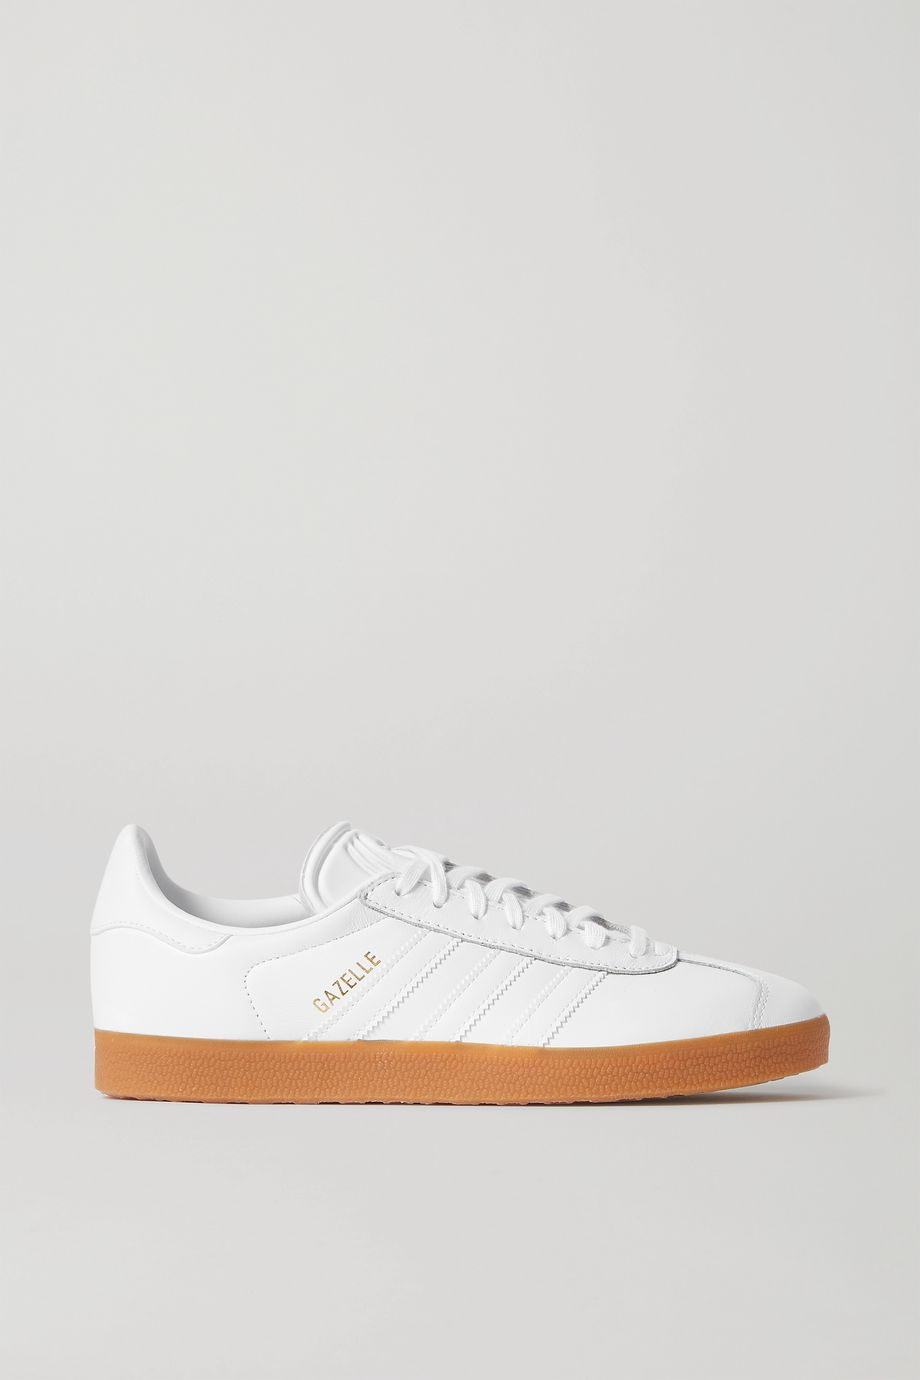 adidas Originals Gazelle leather sneakers